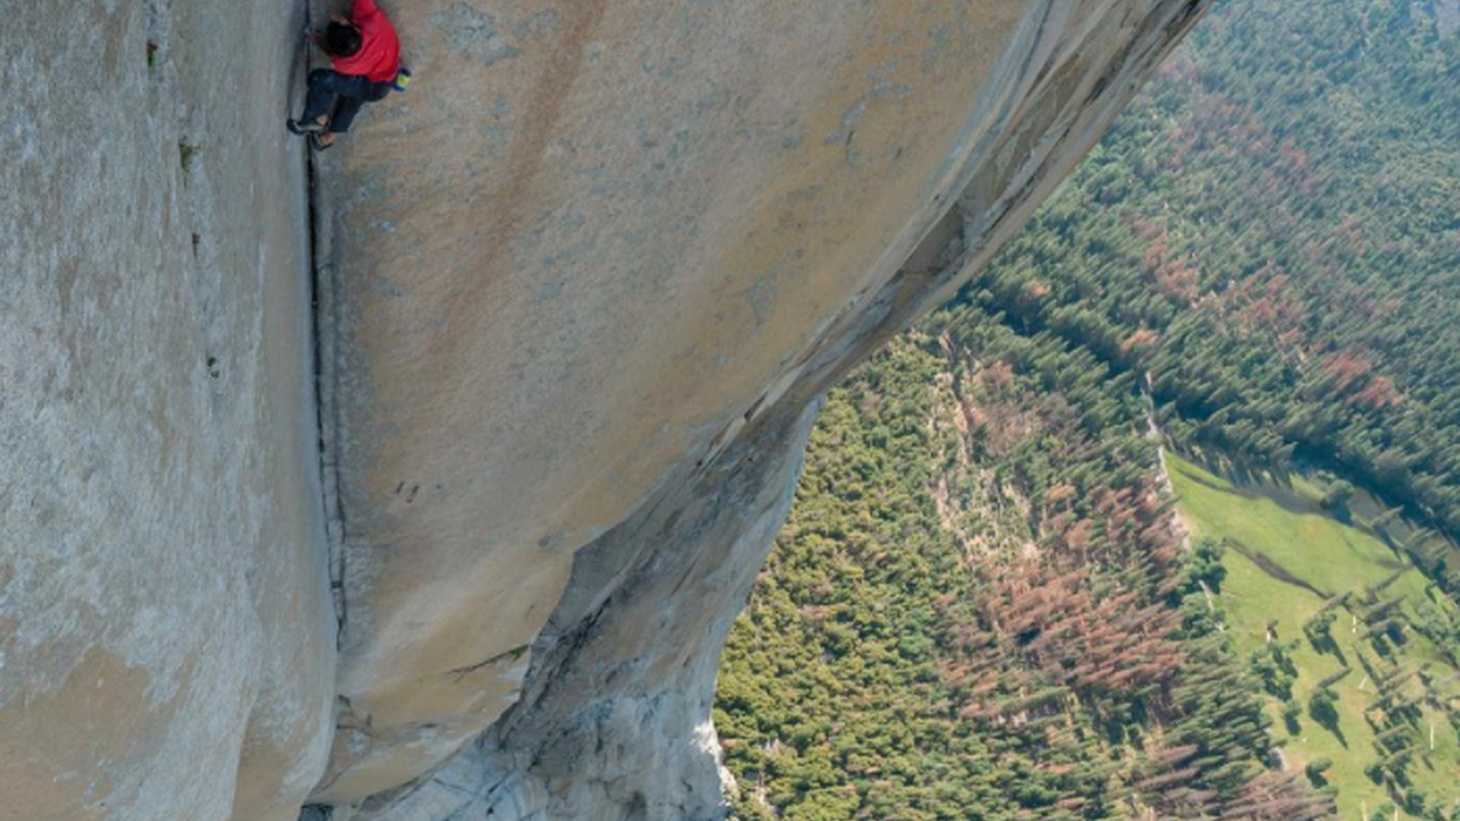 Alex Honnold was whistling as he scaled the 3000 foot granite monolith of Yosemite's El Capitan. He did it with just climbing shoes, a bag of chalk, and his bare hands. It took him less than four hours to reach the top. He's the first person in the world to do it without any ropes.